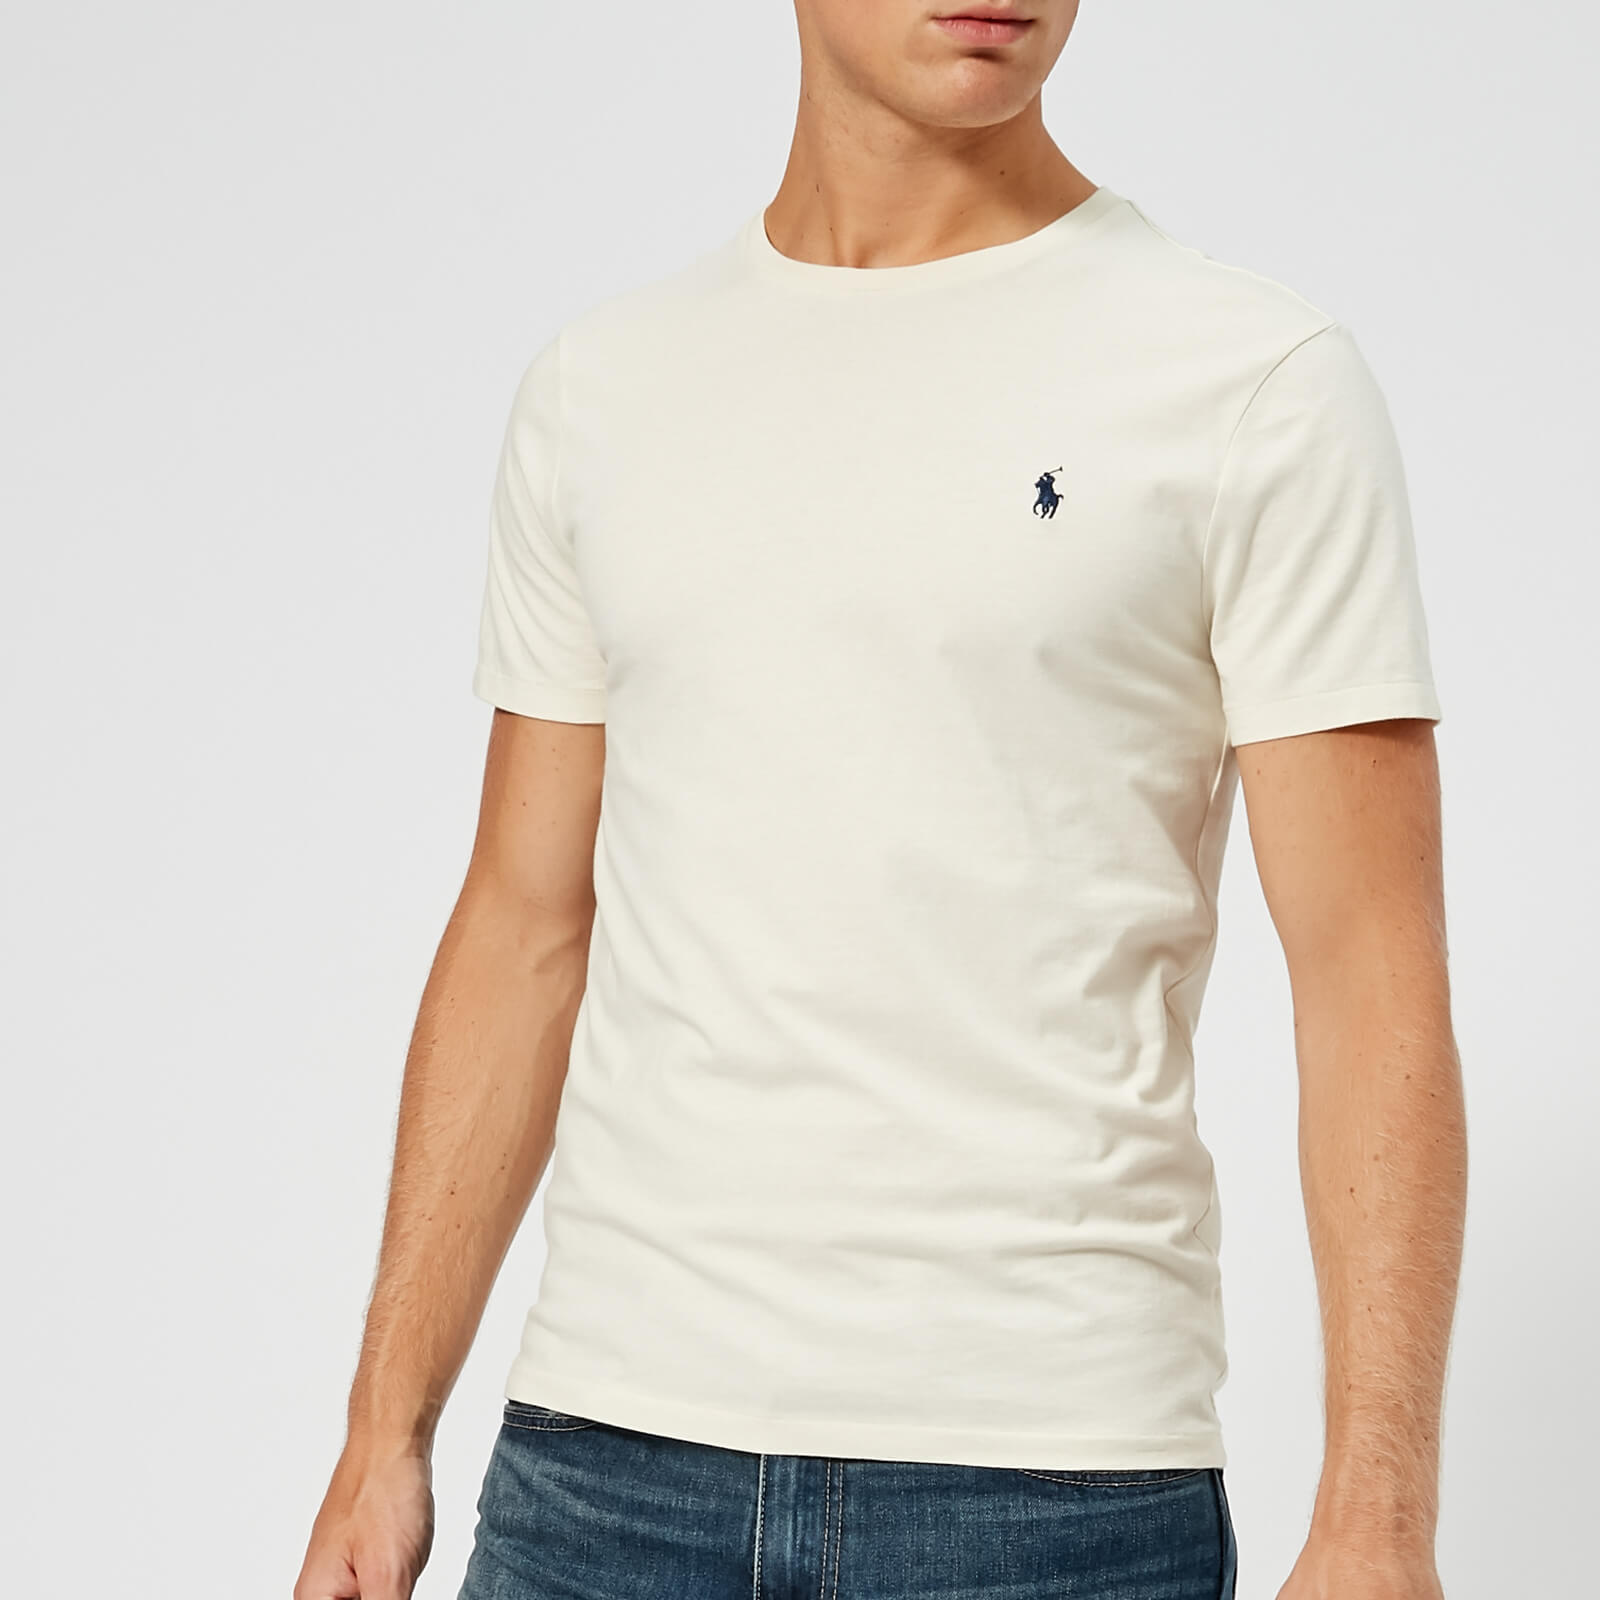 9eb37e50 Polo Ralph Lauren Men's Custom Slim Fit T-Shirt - Chic Cream - Free UK  Delivery over £50